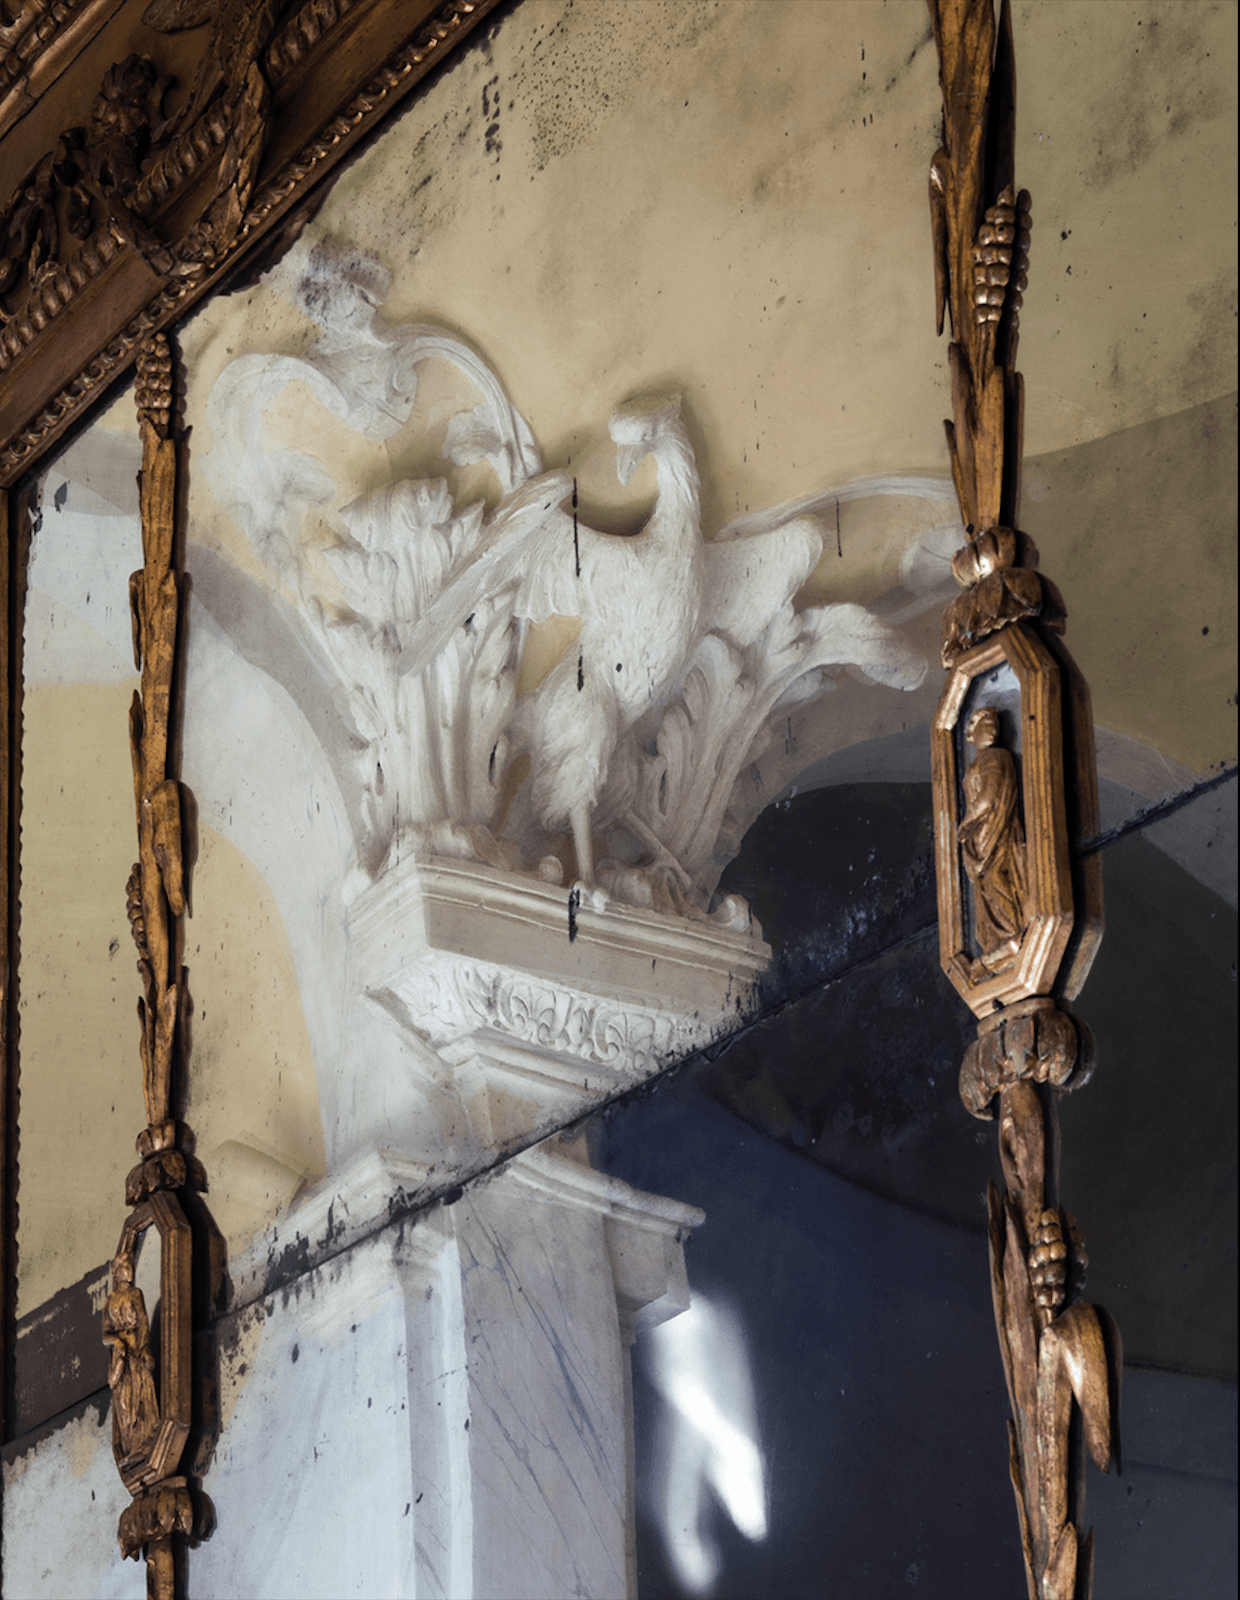 Villa Balbiano luxury property Lake Como Milan first floor gallery antique collection furniture marble details decor decoration exclusive service accommodation wedding events